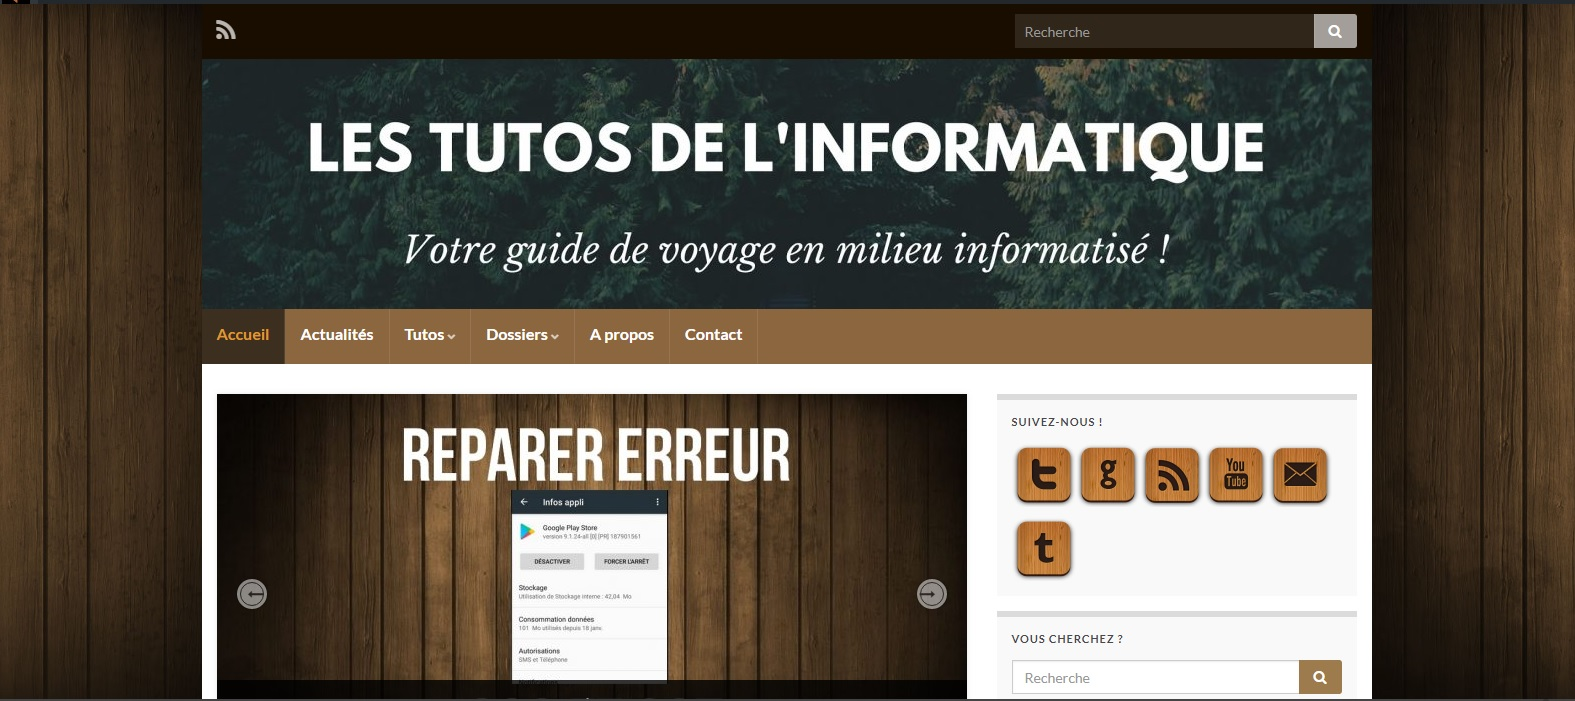 Les-tutos-de-linformatique-responsive-design-LTDLI-bureau